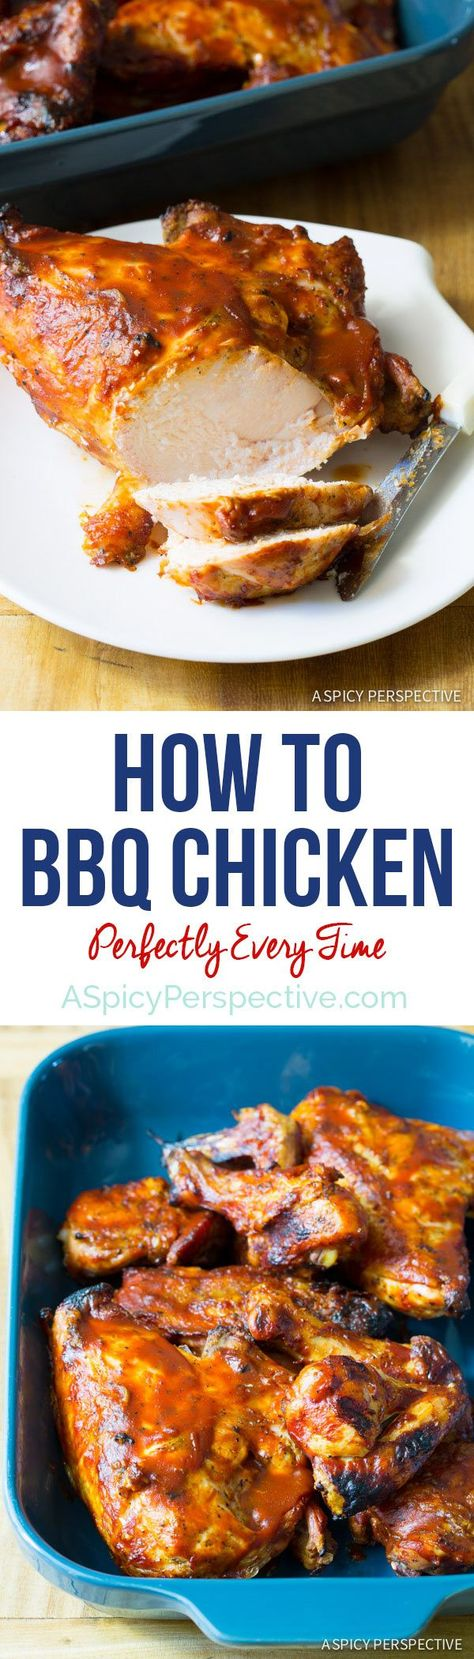 How to: BBQ Chicken - Tips and Tricks for Perfect Grilled Chicken!